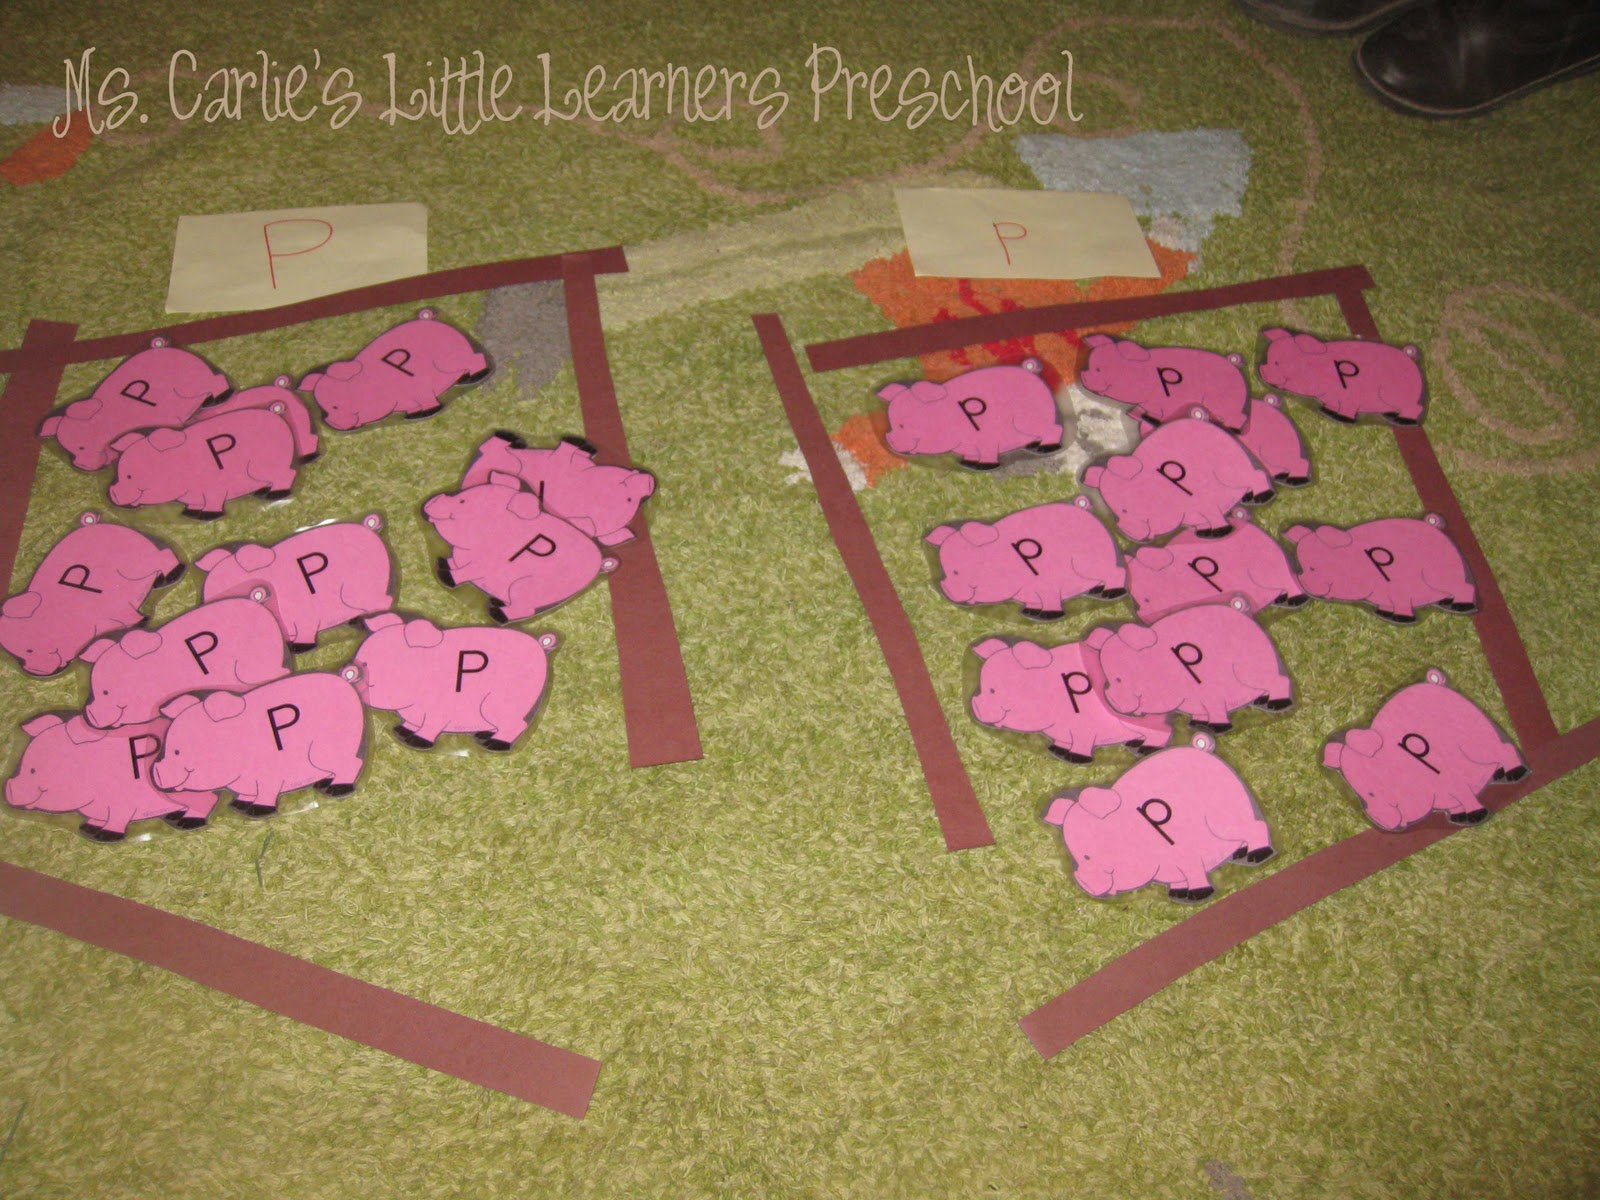 Ms carlie 39 s little learners preschool letter p games for Letter p preschool crafts